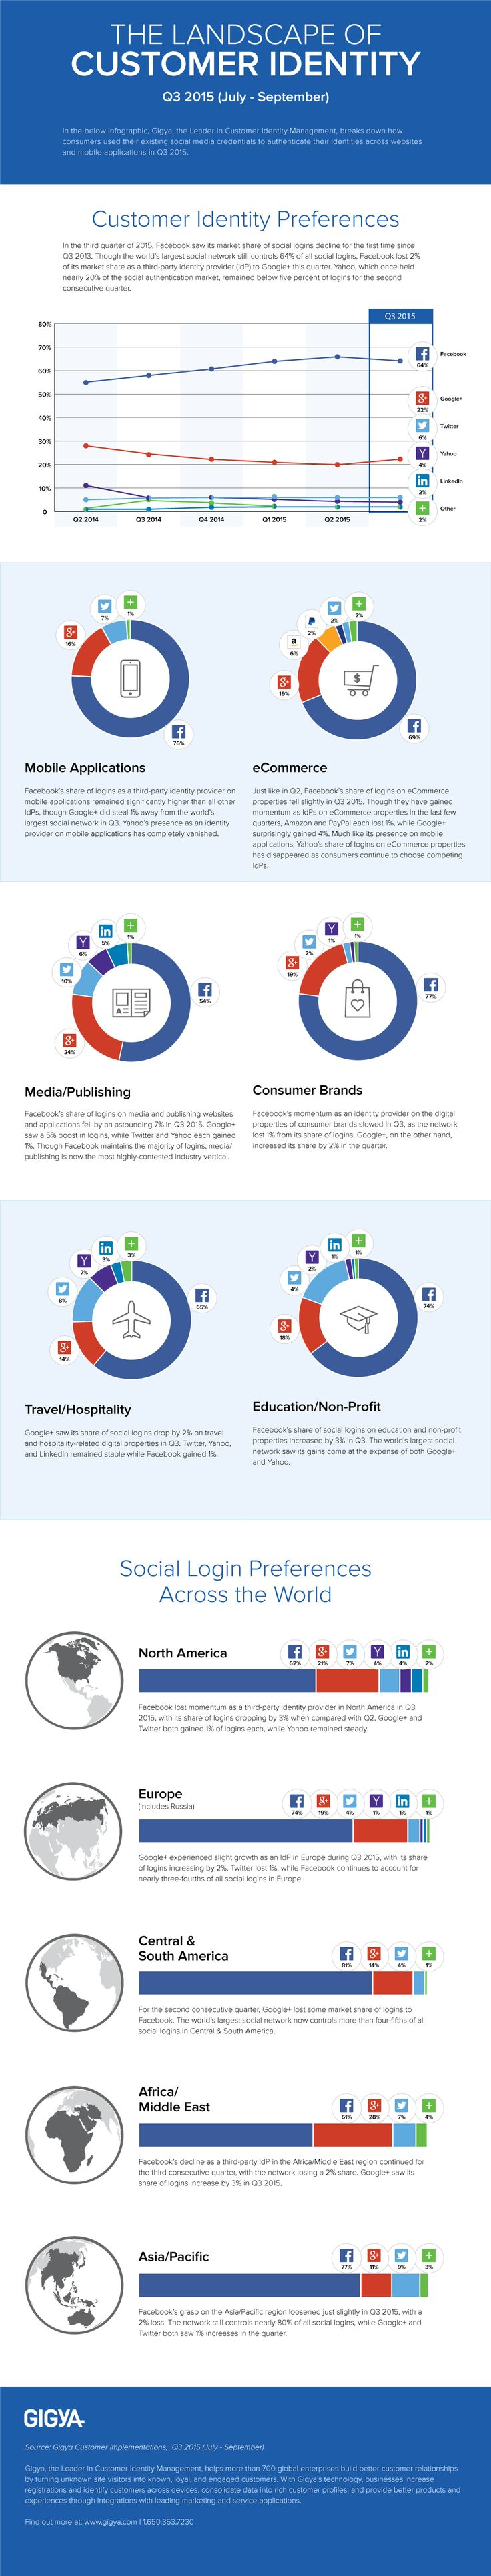 This infographic produced by Gigya, takes a closer look at how consumers used their existing social media credentials to authenticate their identities across websites and mobile applications in Q3 2015.  A key takeaway is: Facebook's share of logins as a third-party identity provider on mobile applications remained significantly higher than all other IdPs, though Google+ did steal 1 percent away from the world's largest social network in Q3.